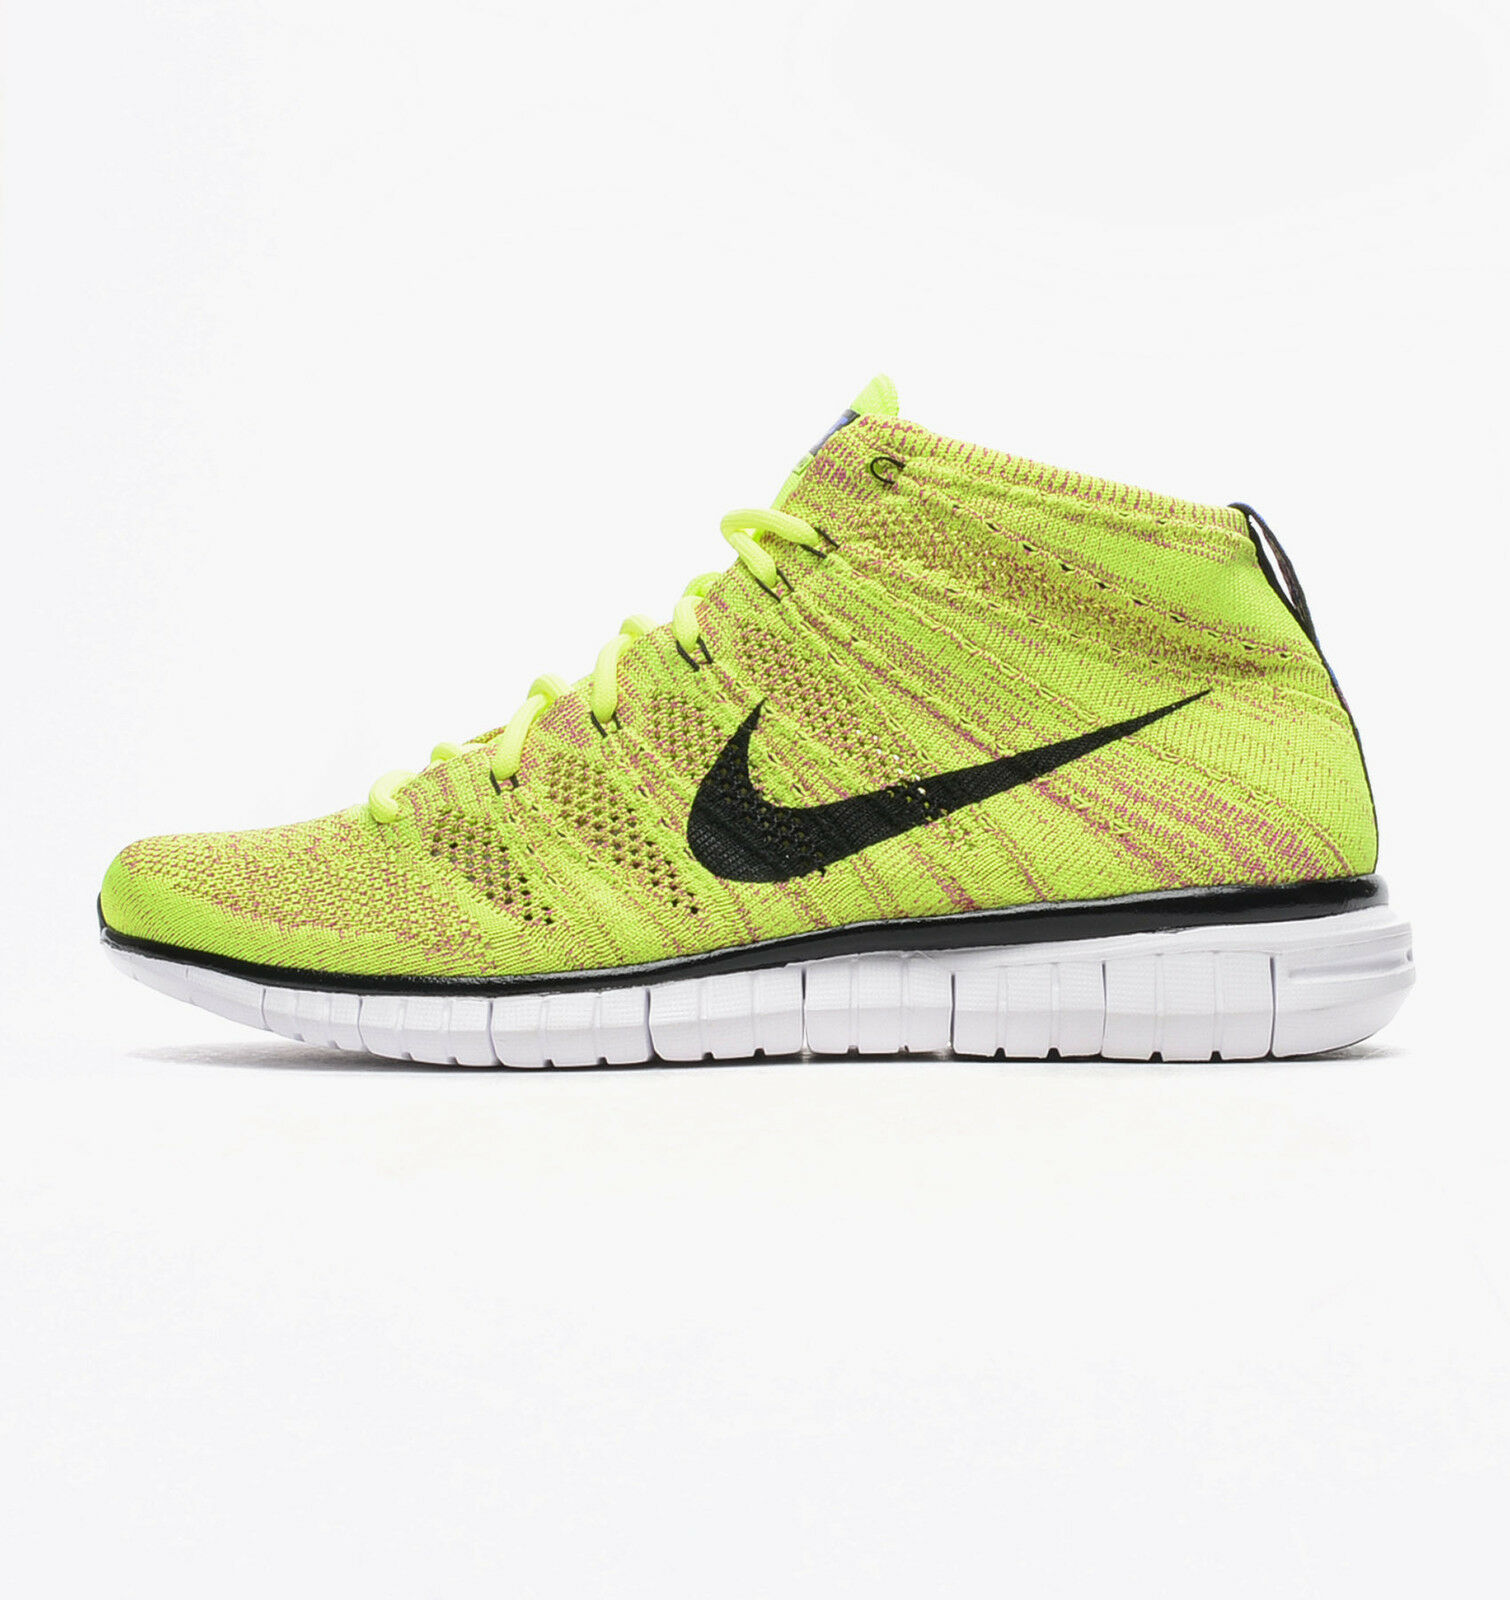 639700-700 Nike Men's Free Flyknit Chukka Volt-black Great discount